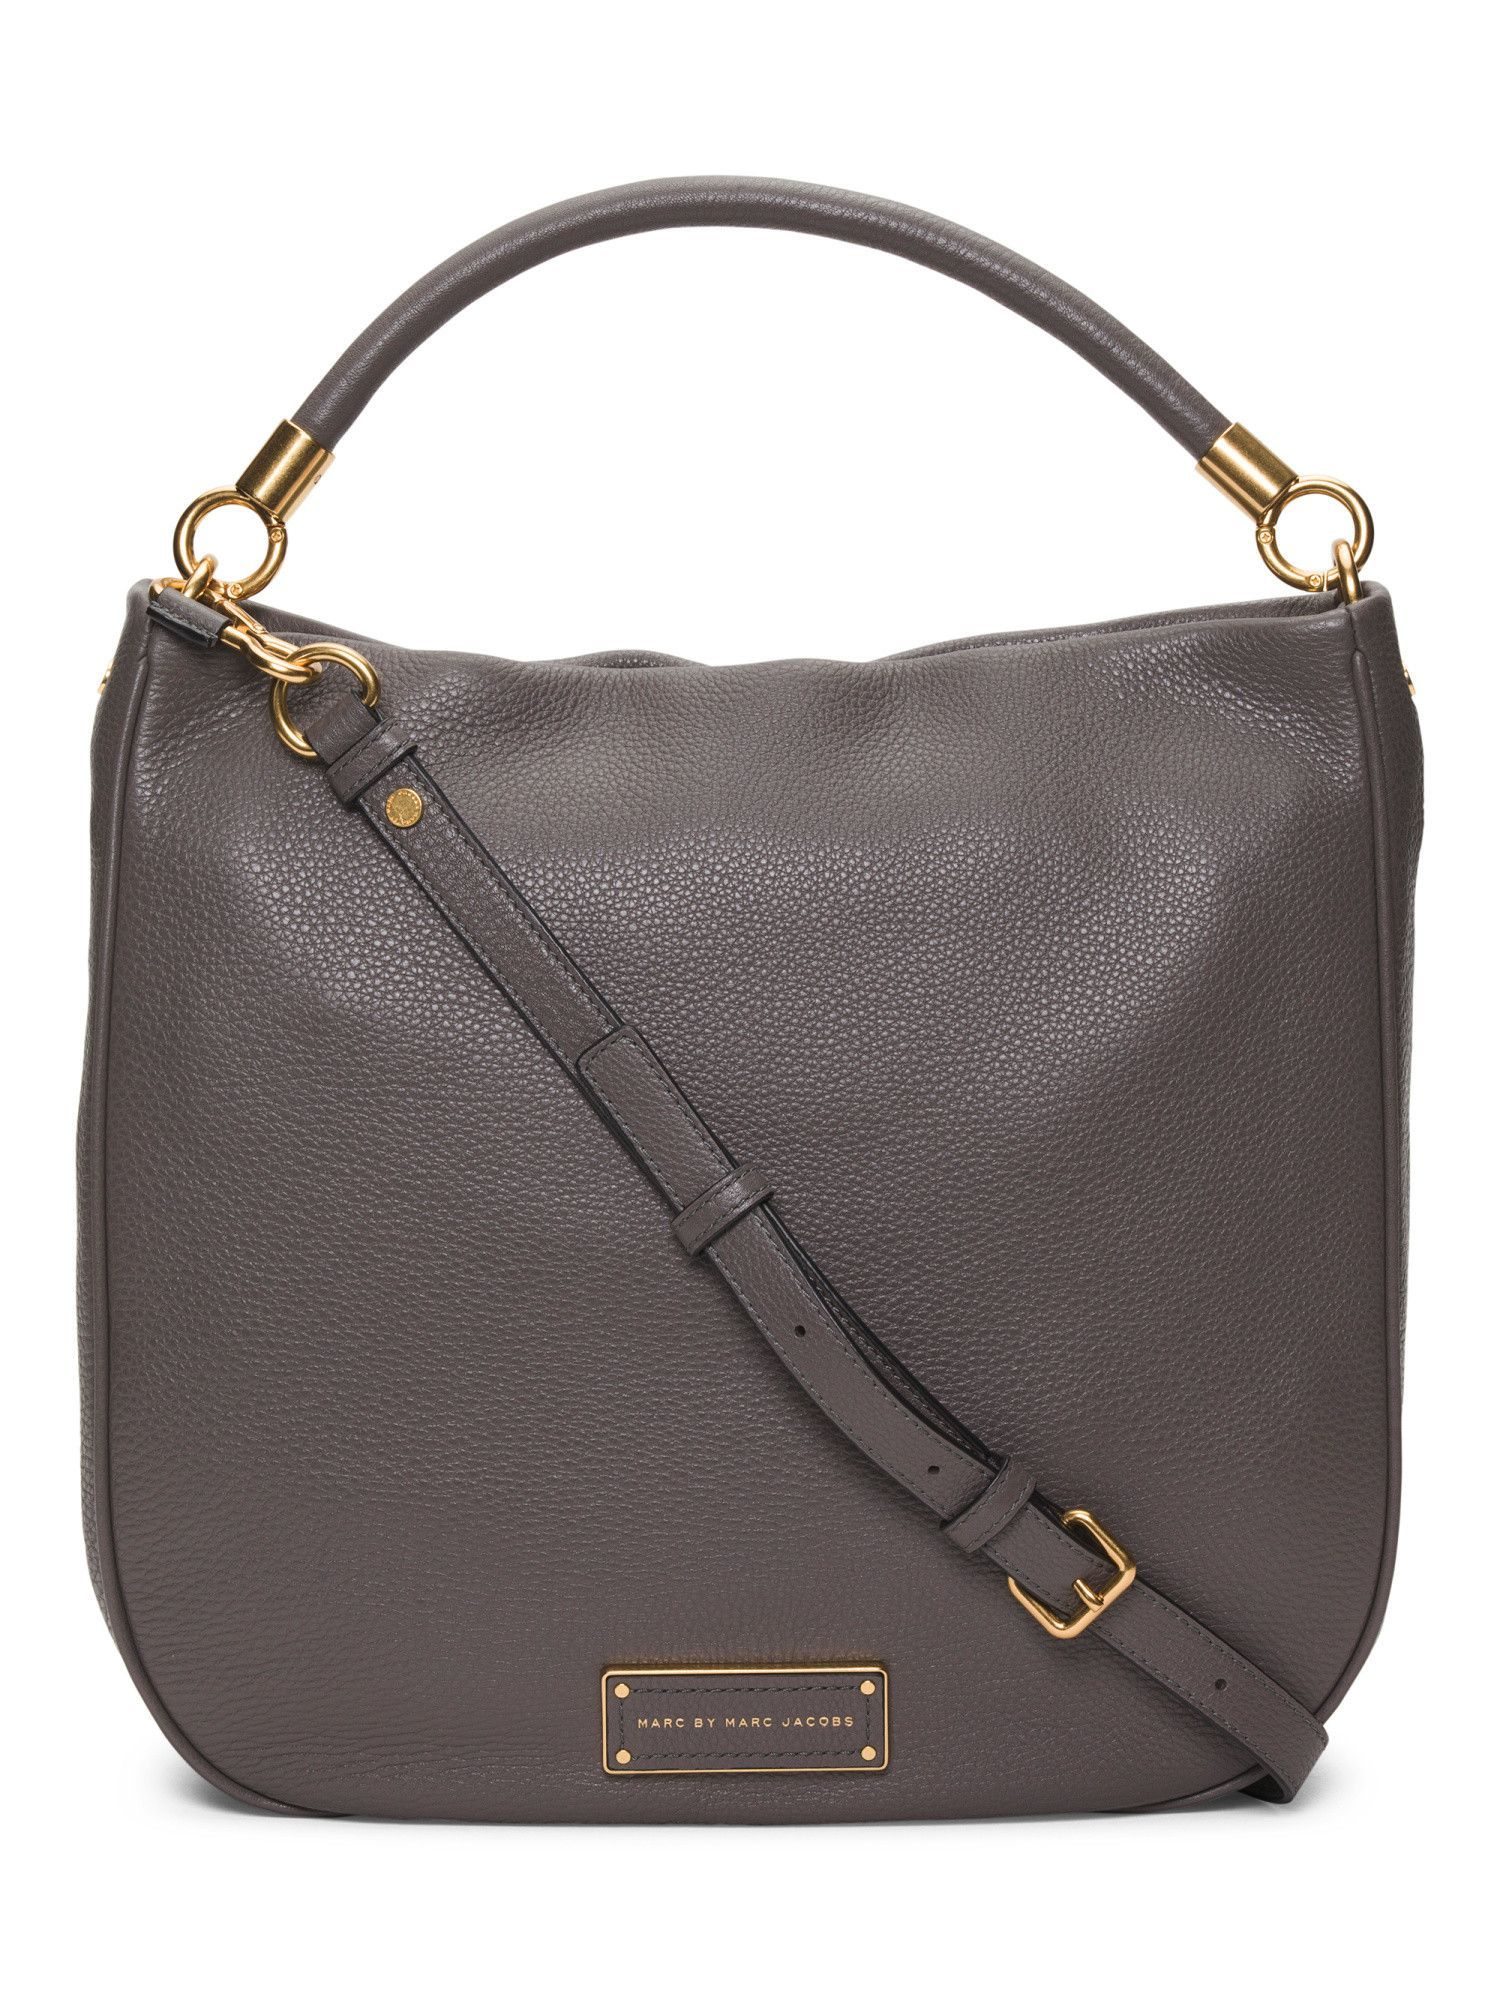 182102388b7c MARC BY MARC JACOBS Too Hot To Handle Leather Hobo in 2019